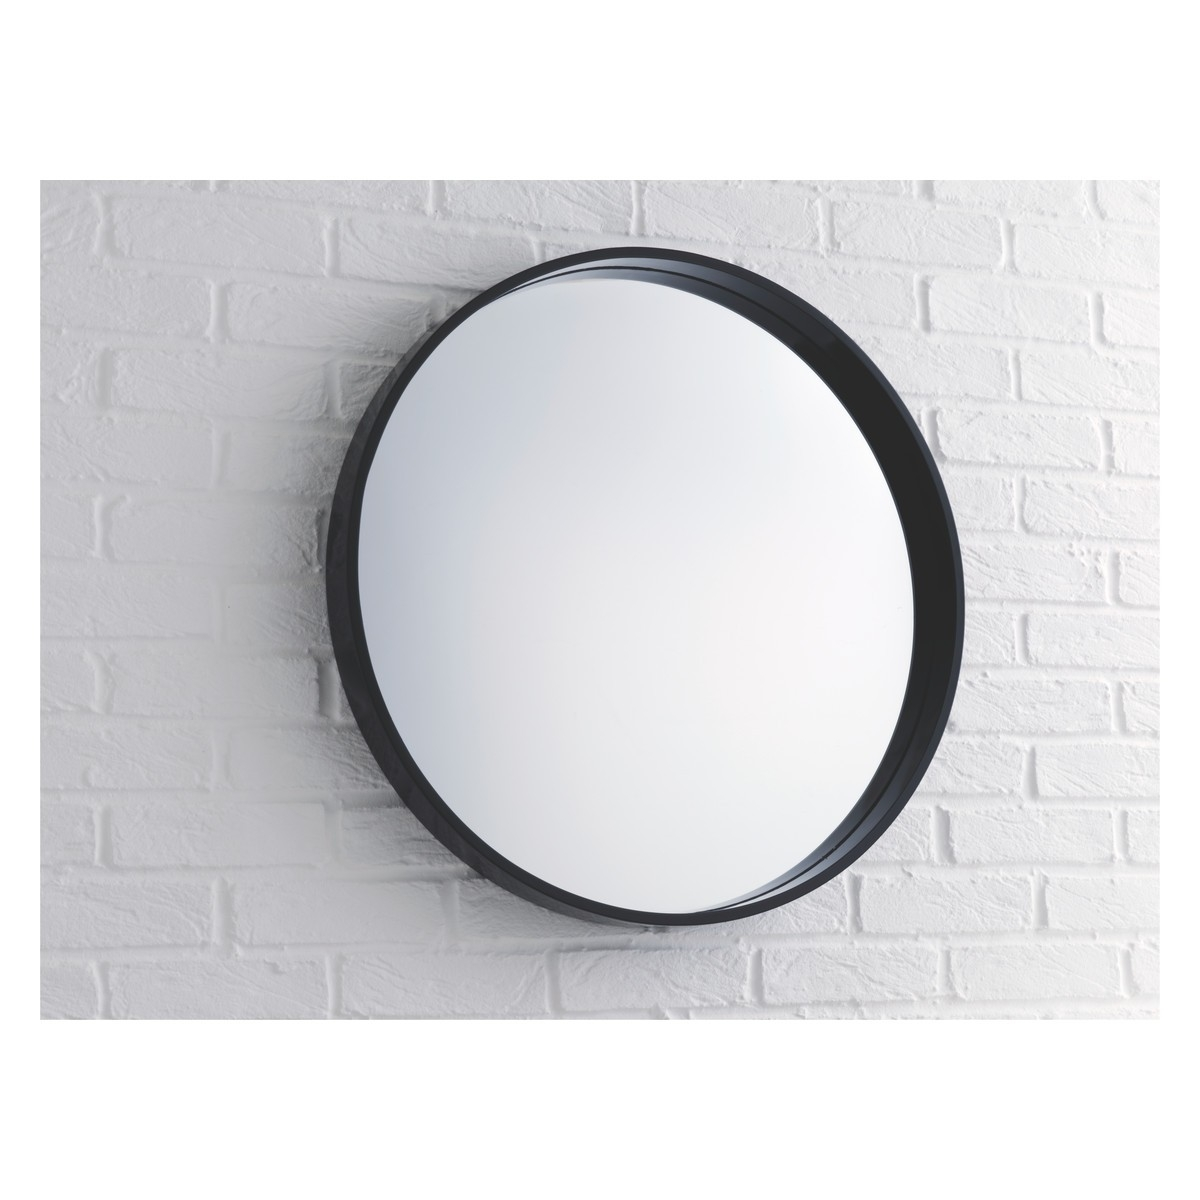 Buy Round Mirror 15 43 Black Round Mirror Mirror Ideas